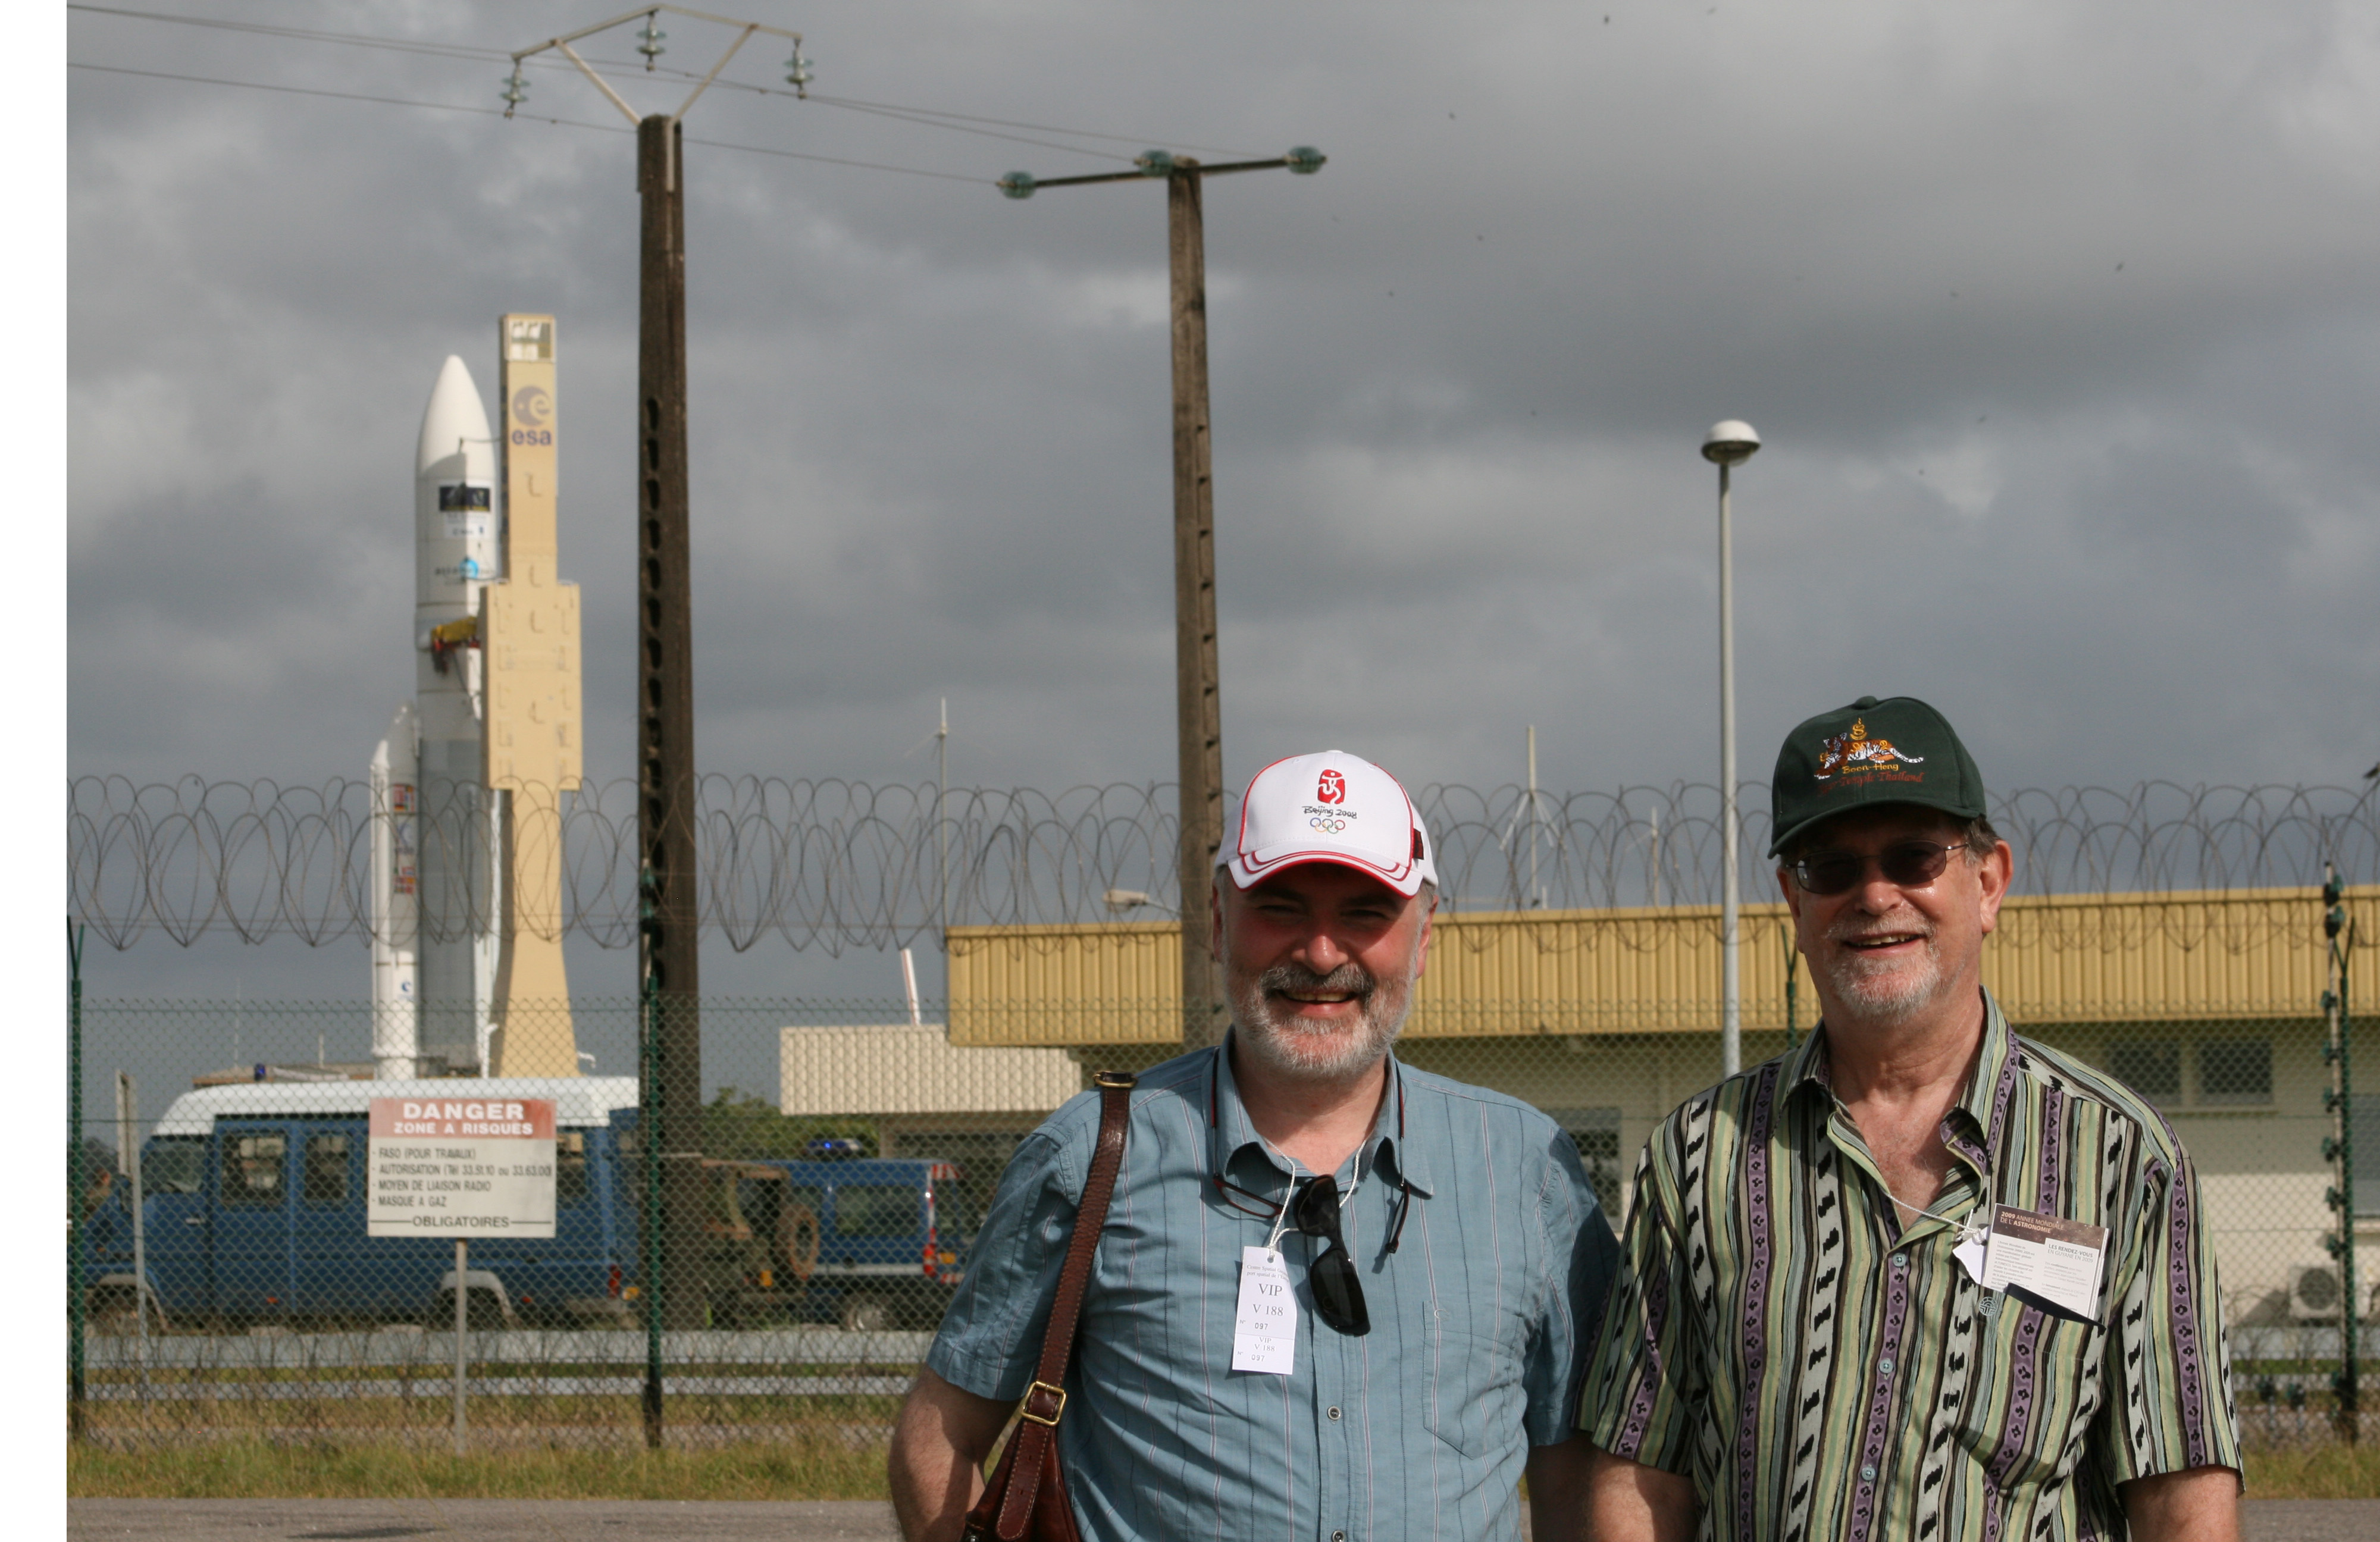 Marco Bersanelli and George Smoot were on hand to watch the launch of the Planck mission from the ESA's base in French Guiana. With Reno Mandolesi, Bersanelli and Smoot proposed one of the satellites that evolved into Planck.